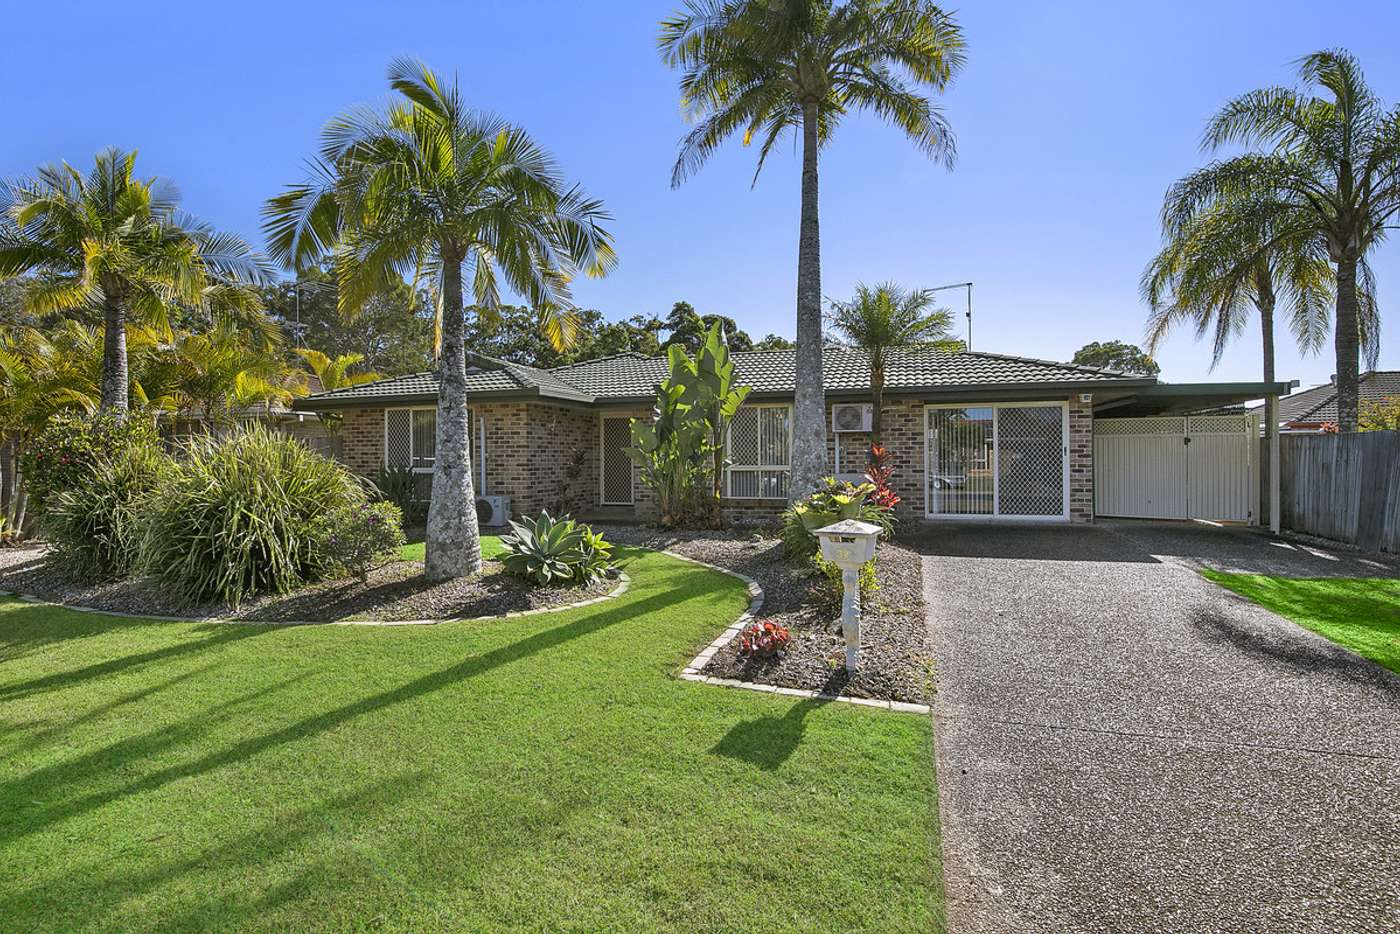 Main view of Homely house listing, 32 Fairway Drive, Redland Bay QLD 4165